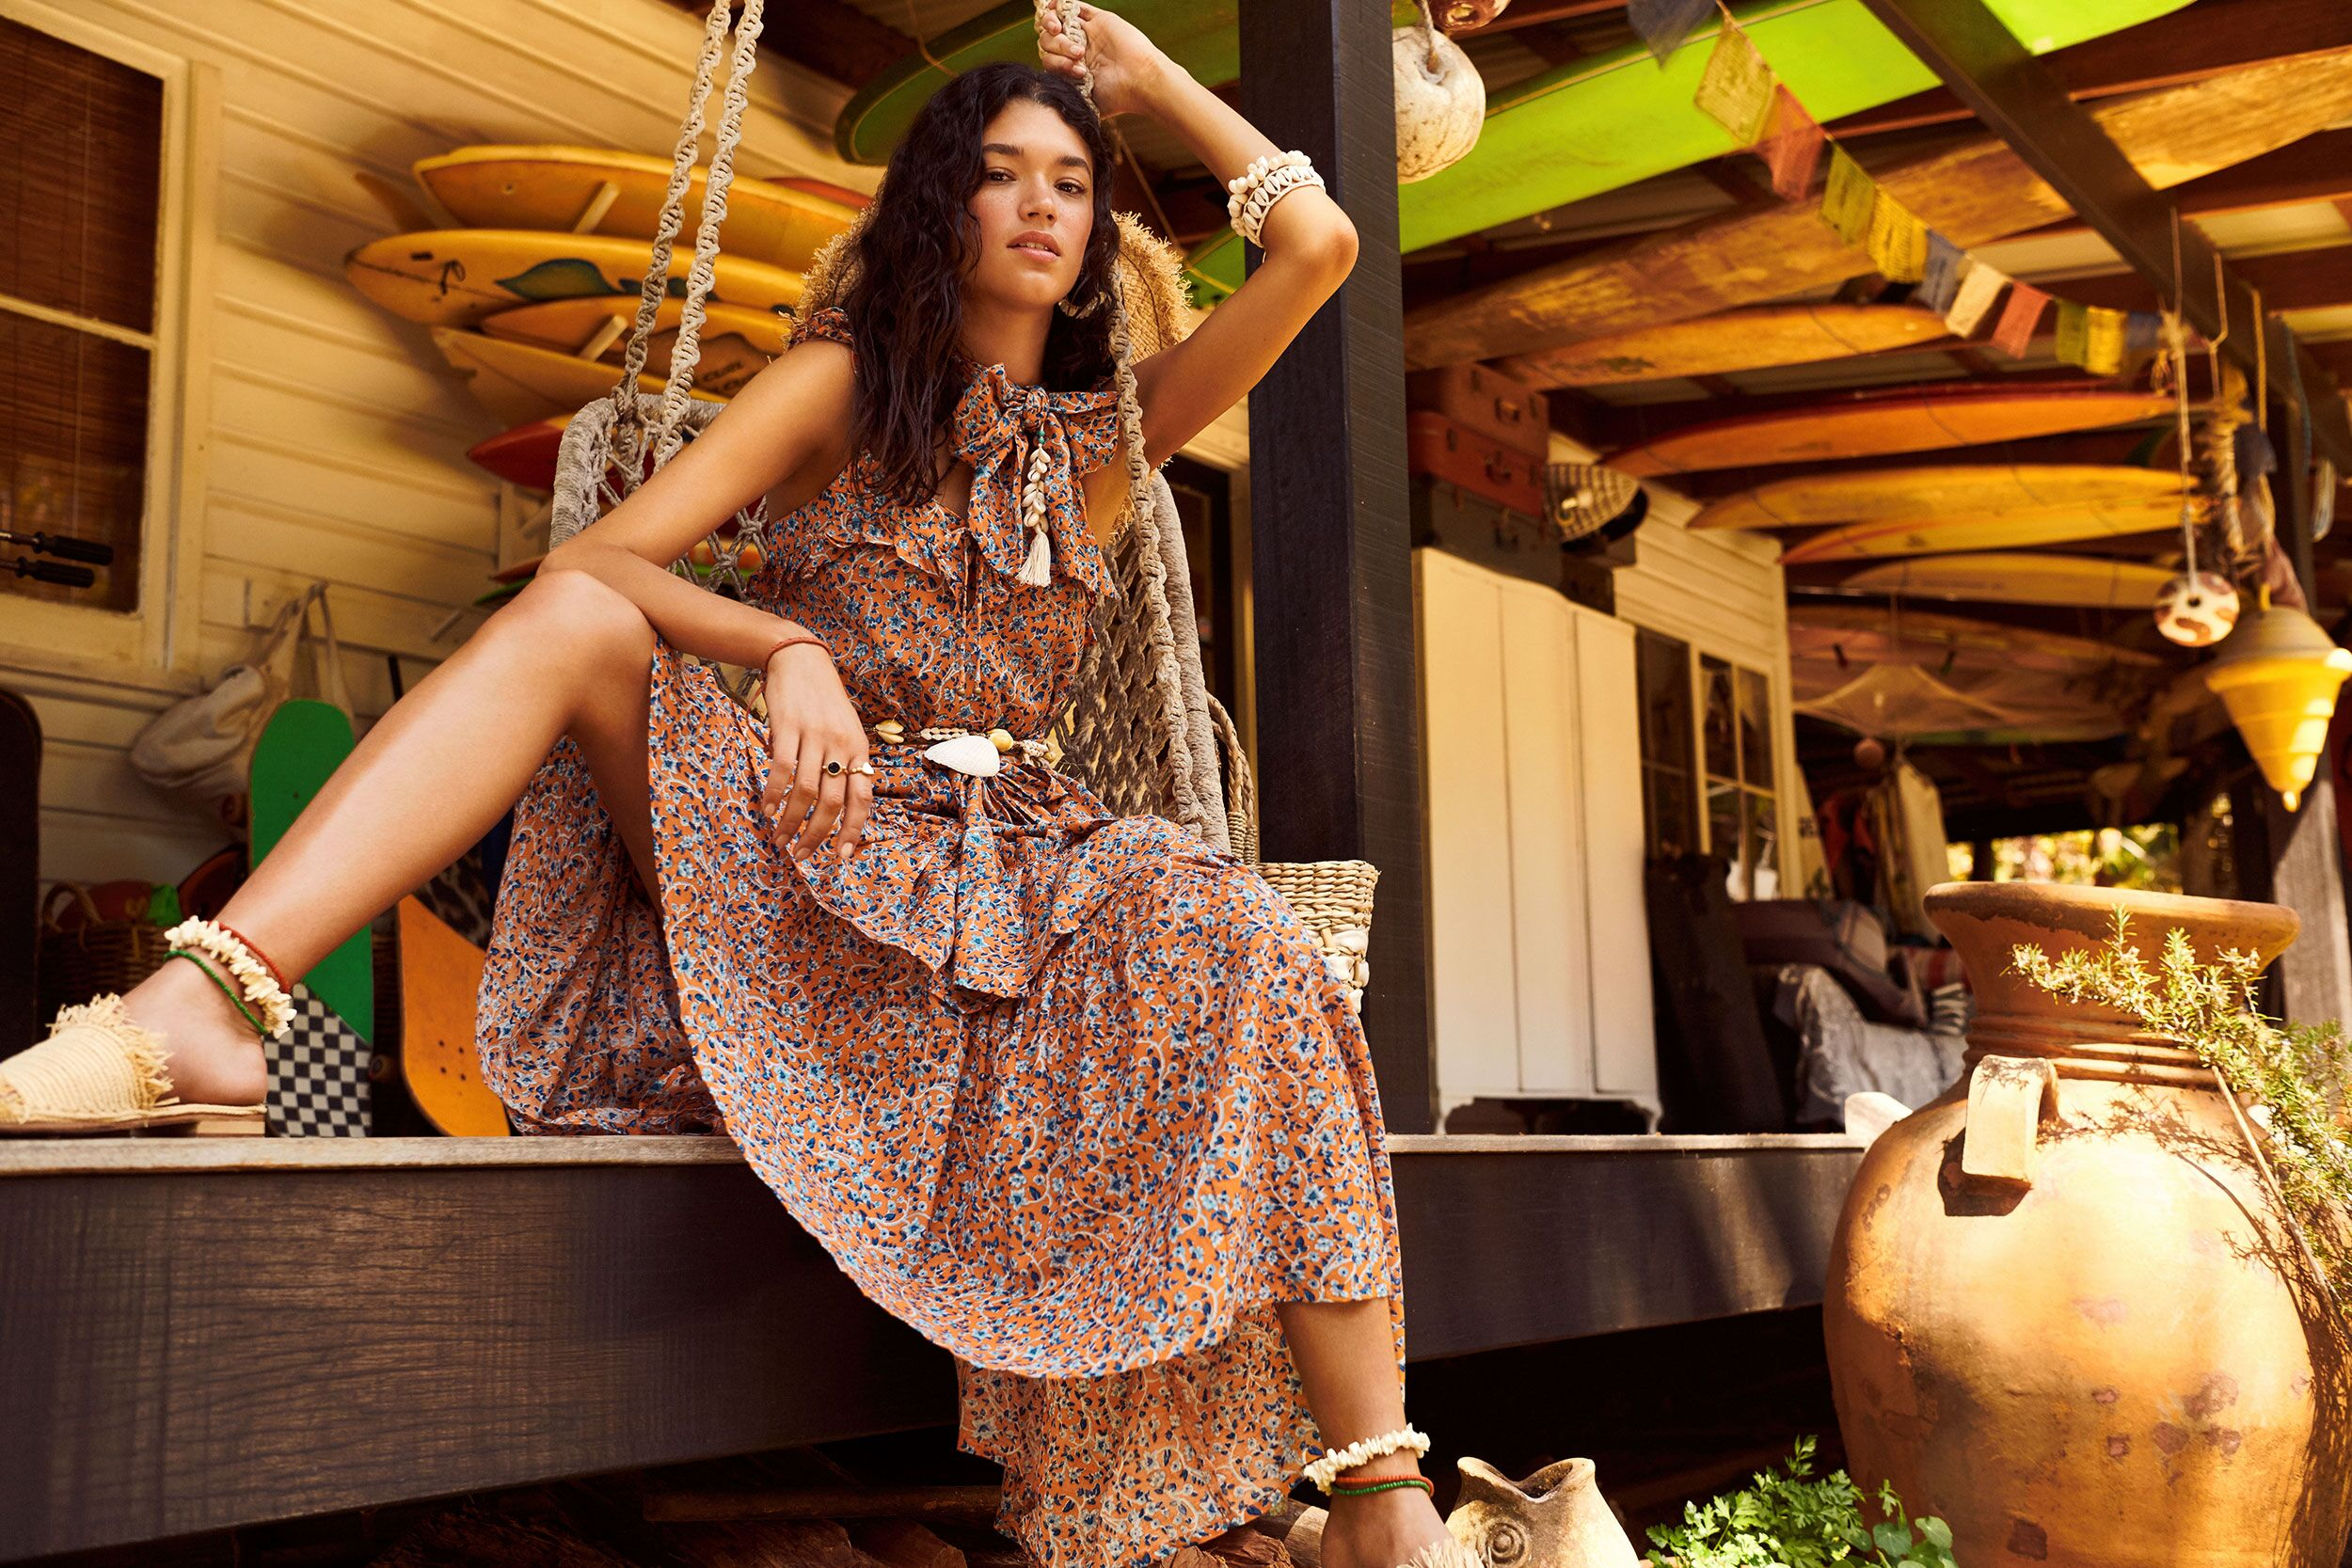 Fashion brand Tigerlily launches new brand identity and Resort '20 campaign via Three60